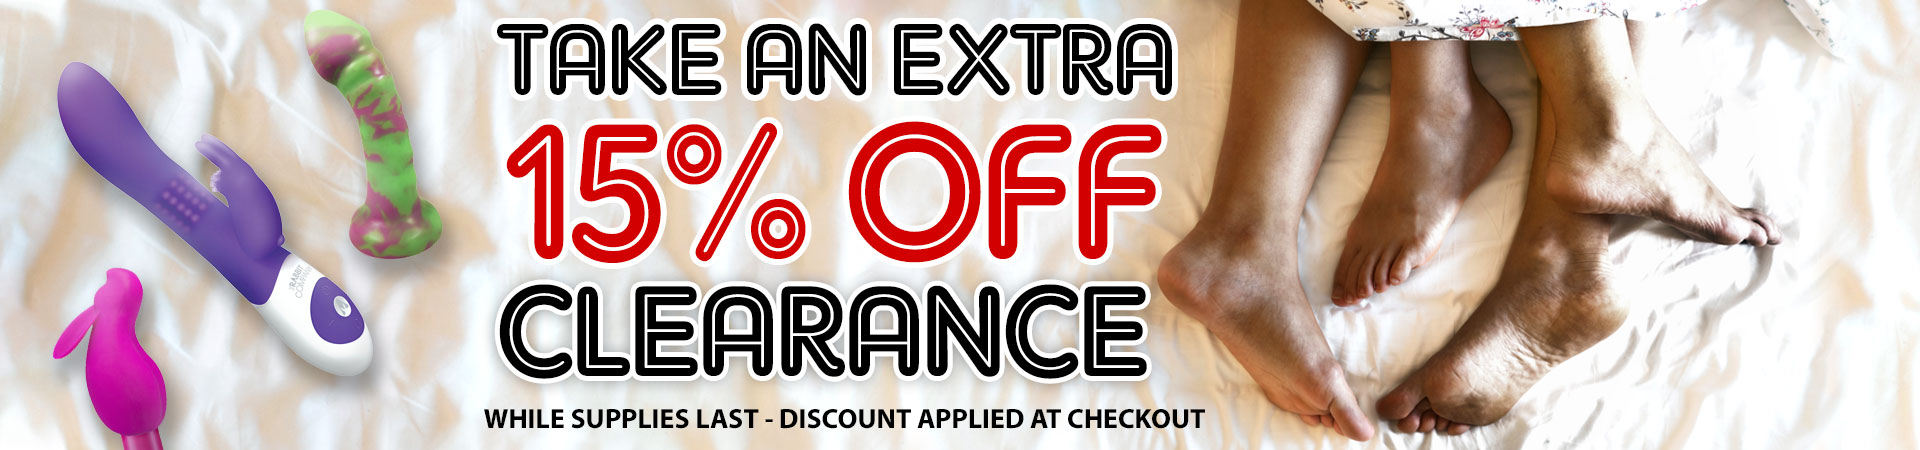 Take An Extra 15% Off Clearance - While Supplies Last